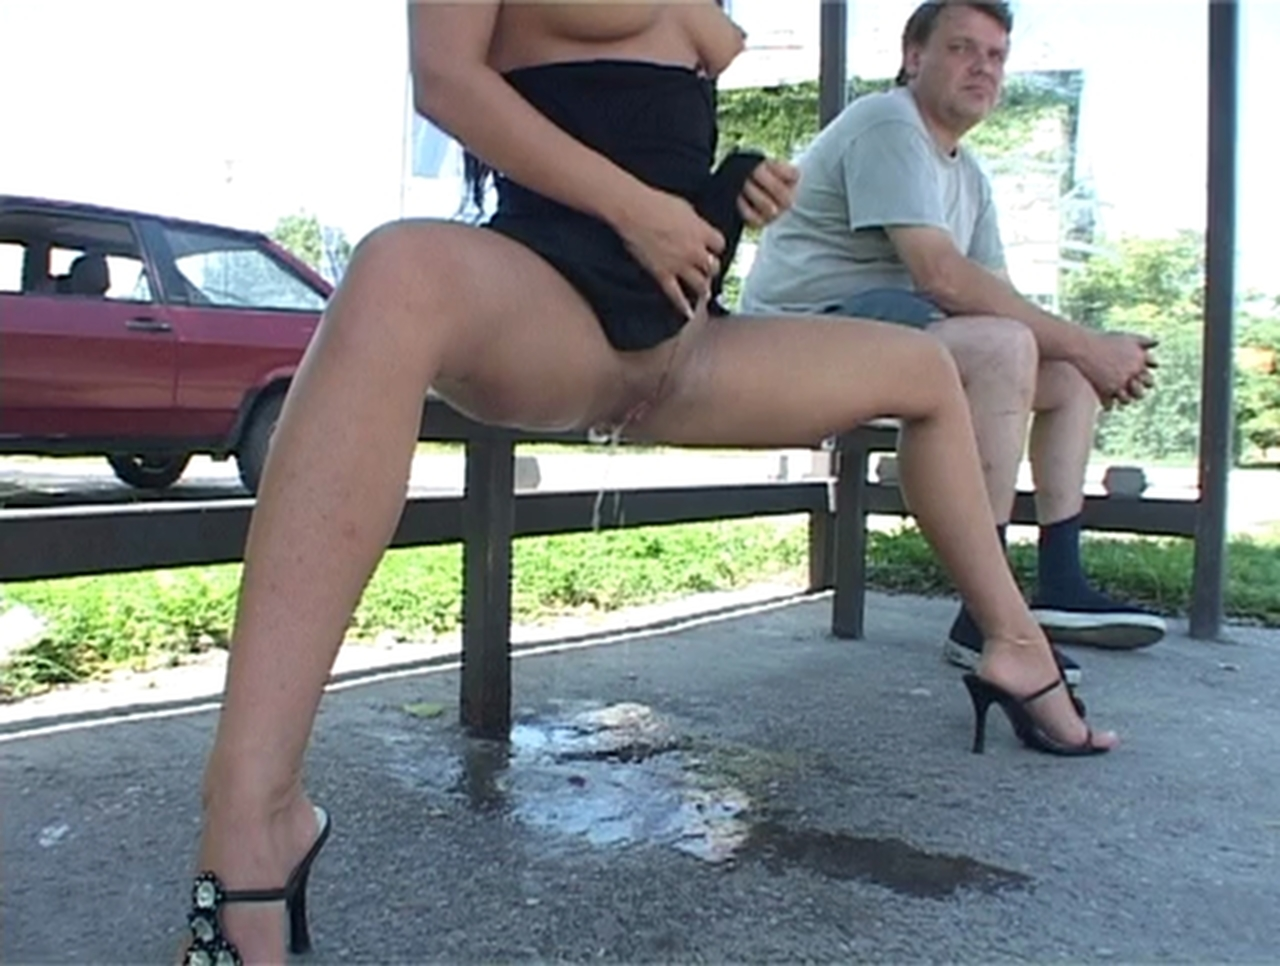 Girls pissing in public